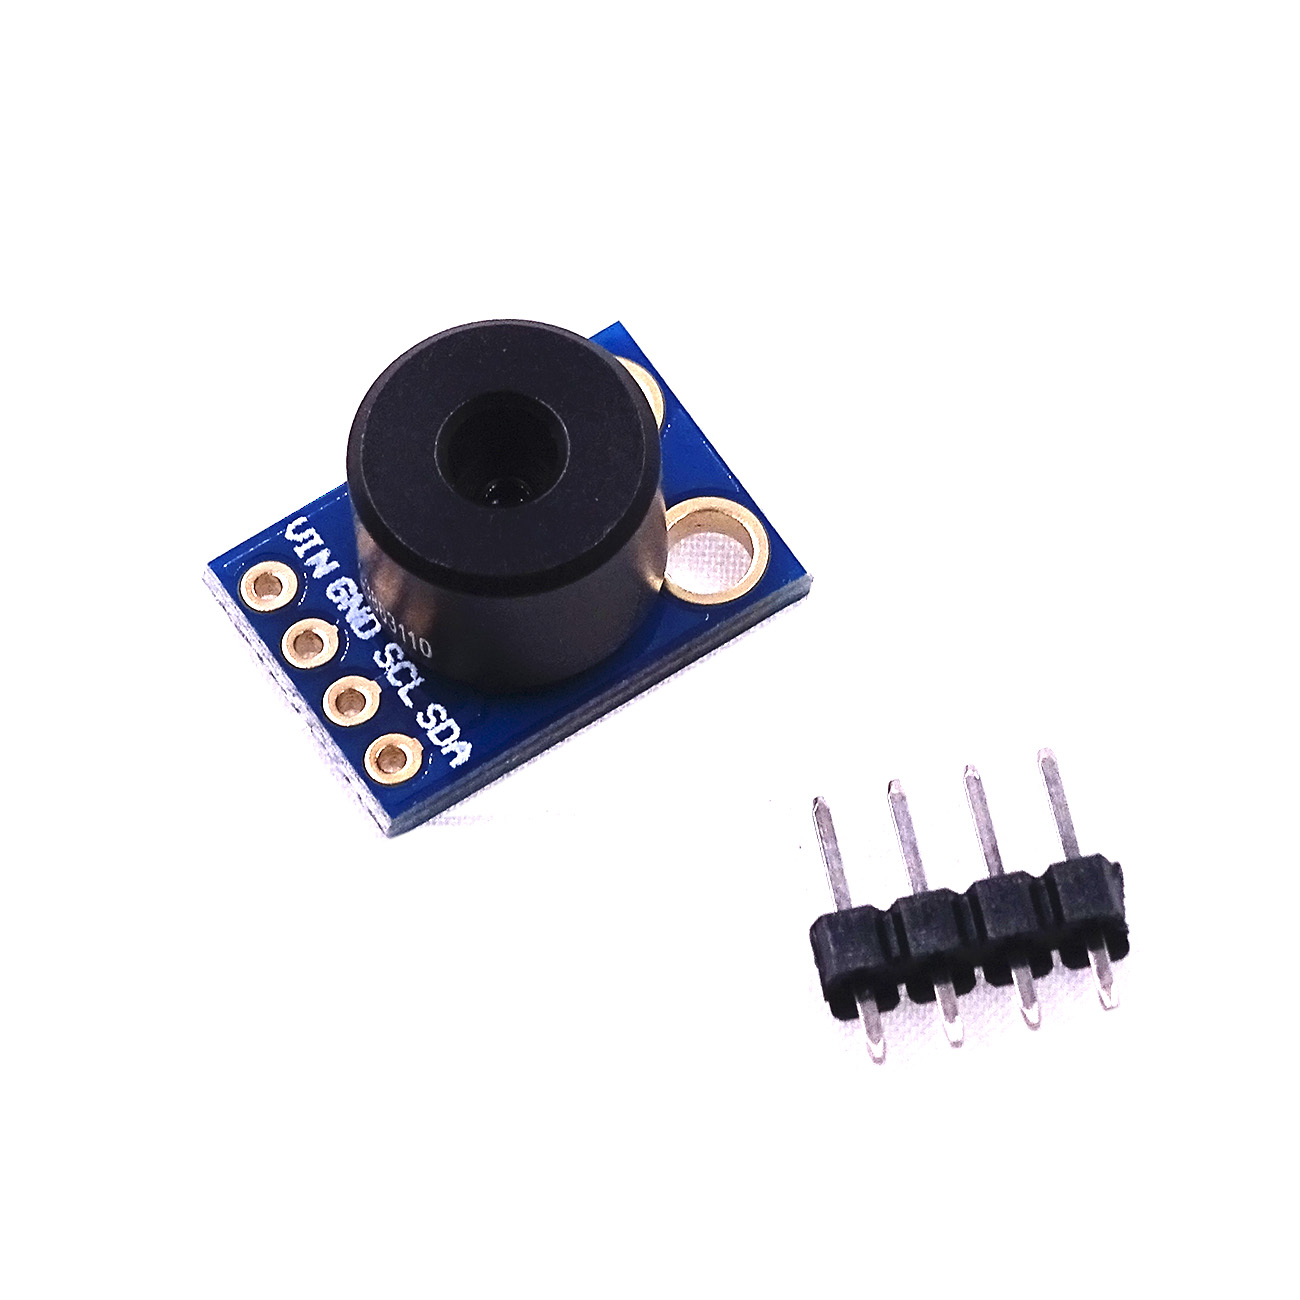 GY-MLX90614-DCI IIC Long Distance Infrared Temperature Sensor Module Small Angle